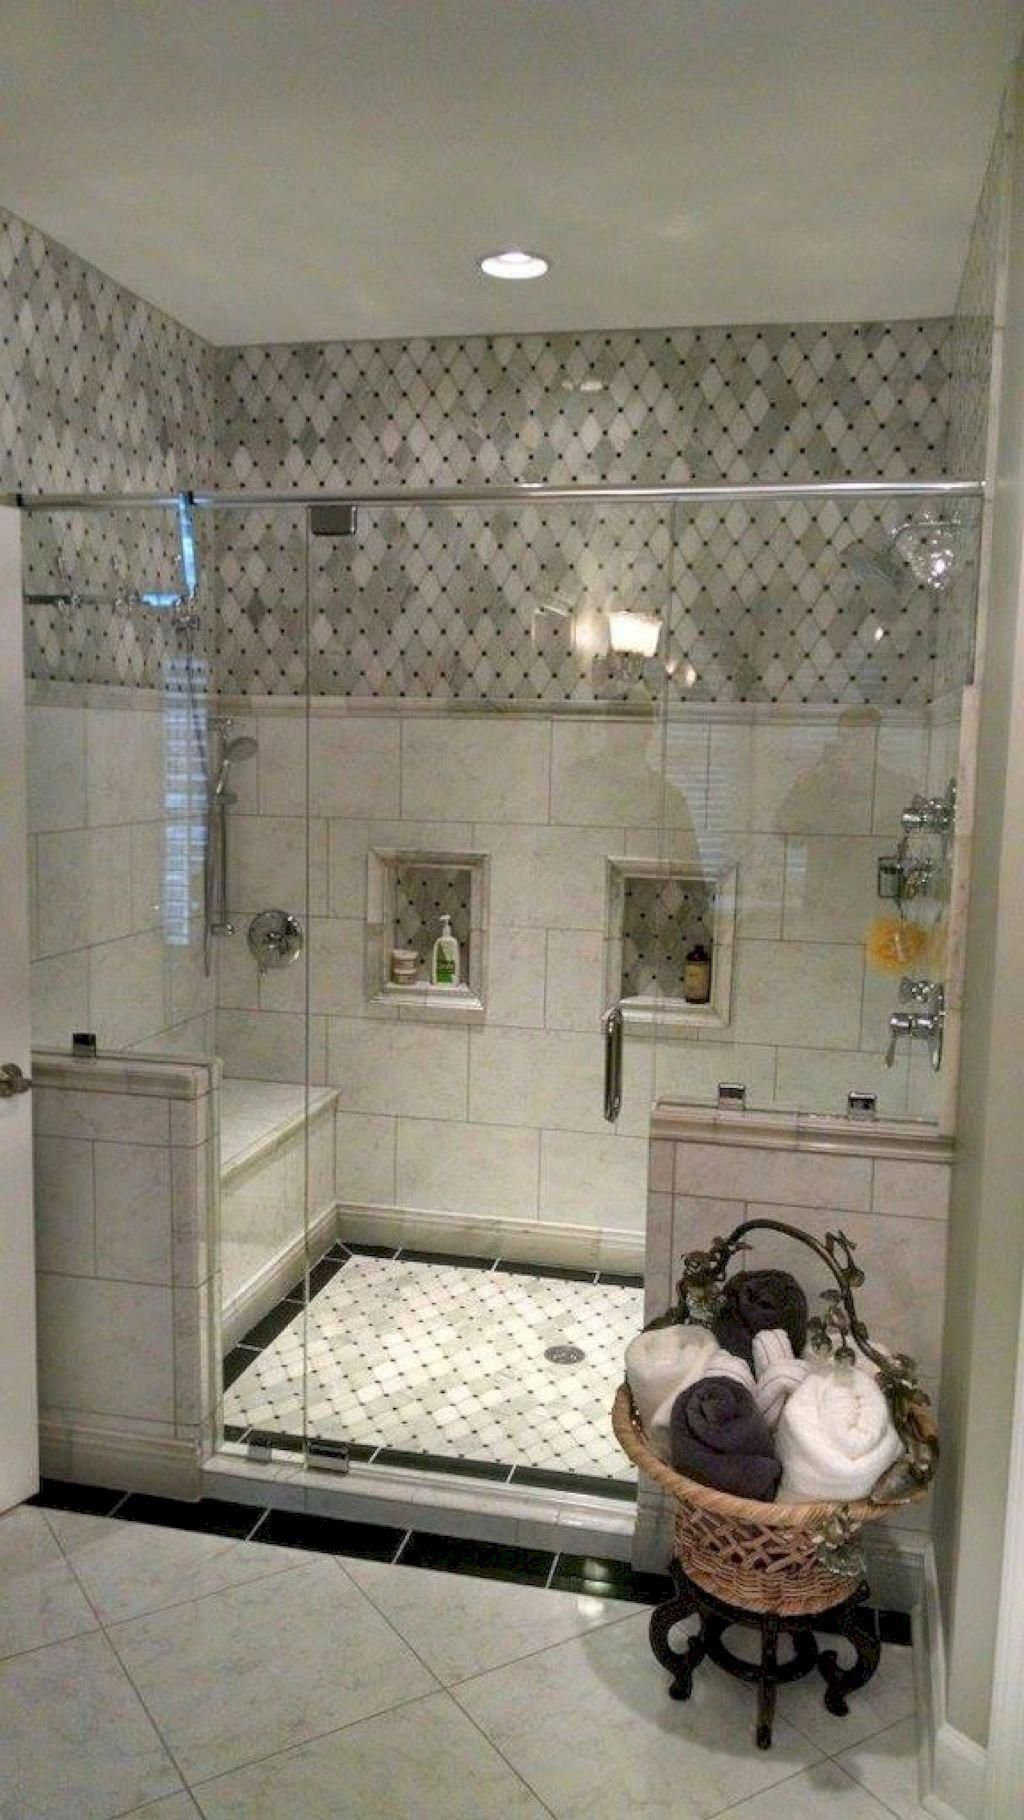 How Much Does A Kitchen Remodel Cost Bathroom Remodel Master Bathroom Remodel Shower Small Bathroom Remodel